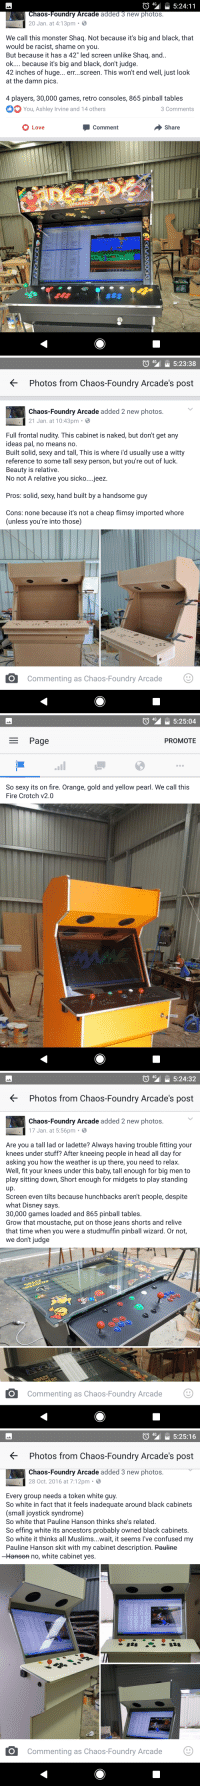 """This guys ads for arcade machines he builds are hilarious and full of innuendo: 4G  i 5:24:11  aos Foundry Arcade added 3 new photos  20 Jan. at 4:13pm  8  We call this monster Shaq. Not because it's big and black, that  would be racist, shame on you  But because it has a 42"""" led screen unlike Shaq, and  ok.... because it's big and black, don't judge  42 inches of huge  err...screen. This won't end well, just look  at the damn pics  4 players, 30,000 games, retro consoles, 865 pinball tables  You, Ashley Irvine and 14 others  3 Comments  O Comment  Share  Love  ULATOR   4G 5:23:38  Photos from Chaos-Foundry Arcade's post  Chaos-Foundry Arcade added 2 new photos  21 Jan. at 10:43pm 8  Full frontal nudity. This cabinet is naked, but don't get any  ideas pal, no mean  no.  Built solid, sexy and tall, This is where id usually use a witty  reference to some tall sexy person, but you're out of luck.  Beauty is relative.  No not A relative you sicko... jeez.  Pros: solid, sexy, hand built by a handsome guy  Cons: none because it's not a cheap flimsy imported whore  (unless you're into those)  O Commenting as Chaos-Foundry Arcade  O   4G  5:25:04  Page  PROMOTE  So sexy its on fire. Orange, gold and yellow pearl. We call this  Fire Crotch v2.0   4G  5:24:32  Photos from Chaos-Foundry Arcade's post  Chaos-Foundry Arcade added 2 new photos  17 Jan. at 5:56pm B  Are you a tall lad or ladette? Always having trouble fitting your  knees under stuff? After kneeing people in head all day for  asking you how the weather is up there, you need to relax  Well, fit your knees under this baby, tall enough for big men to  play sitting down, Short enough for midgets to play standing  up  Screen even tilts because hunchbacks aren't people, despite  what Disney says  30,000 games loaded and 865 pinball tables  Grow that moustache, put on those jeans shorts and relive  that time when you were a studmuffin pinball wizard. Or not,  we don't judge  O commenting as Chaos-Foundry Arcade  O   O 40 """